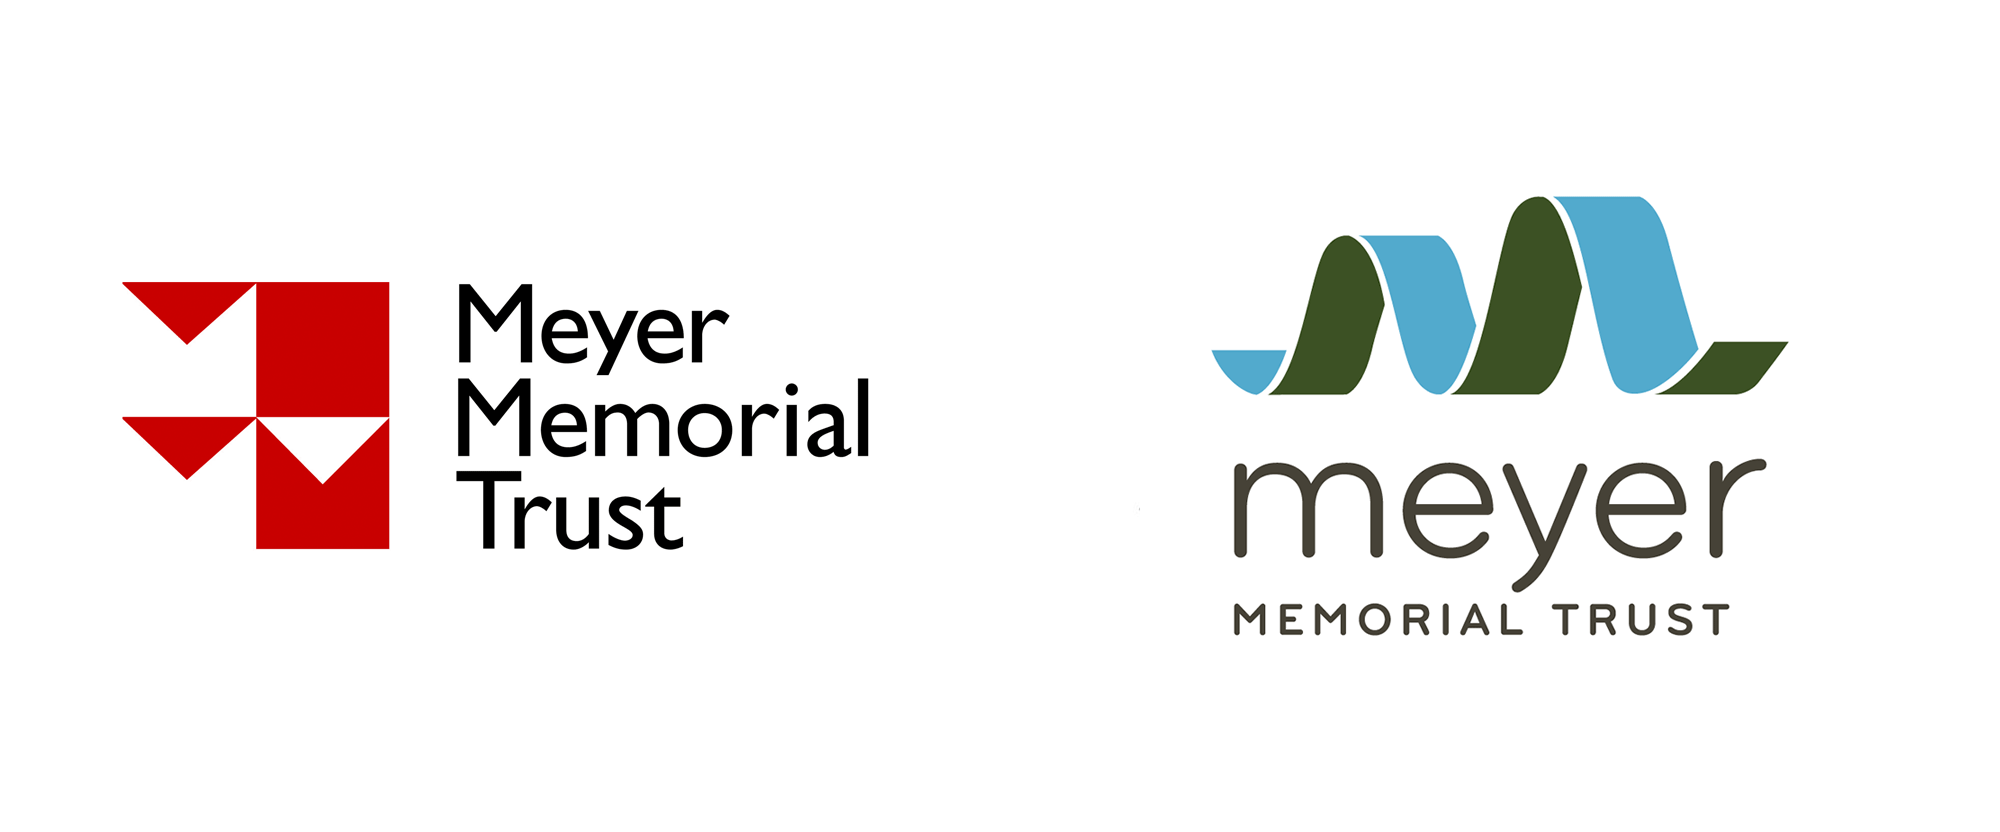 New Logo and Identity for Meyer Memorial Trust by Smith & Connors